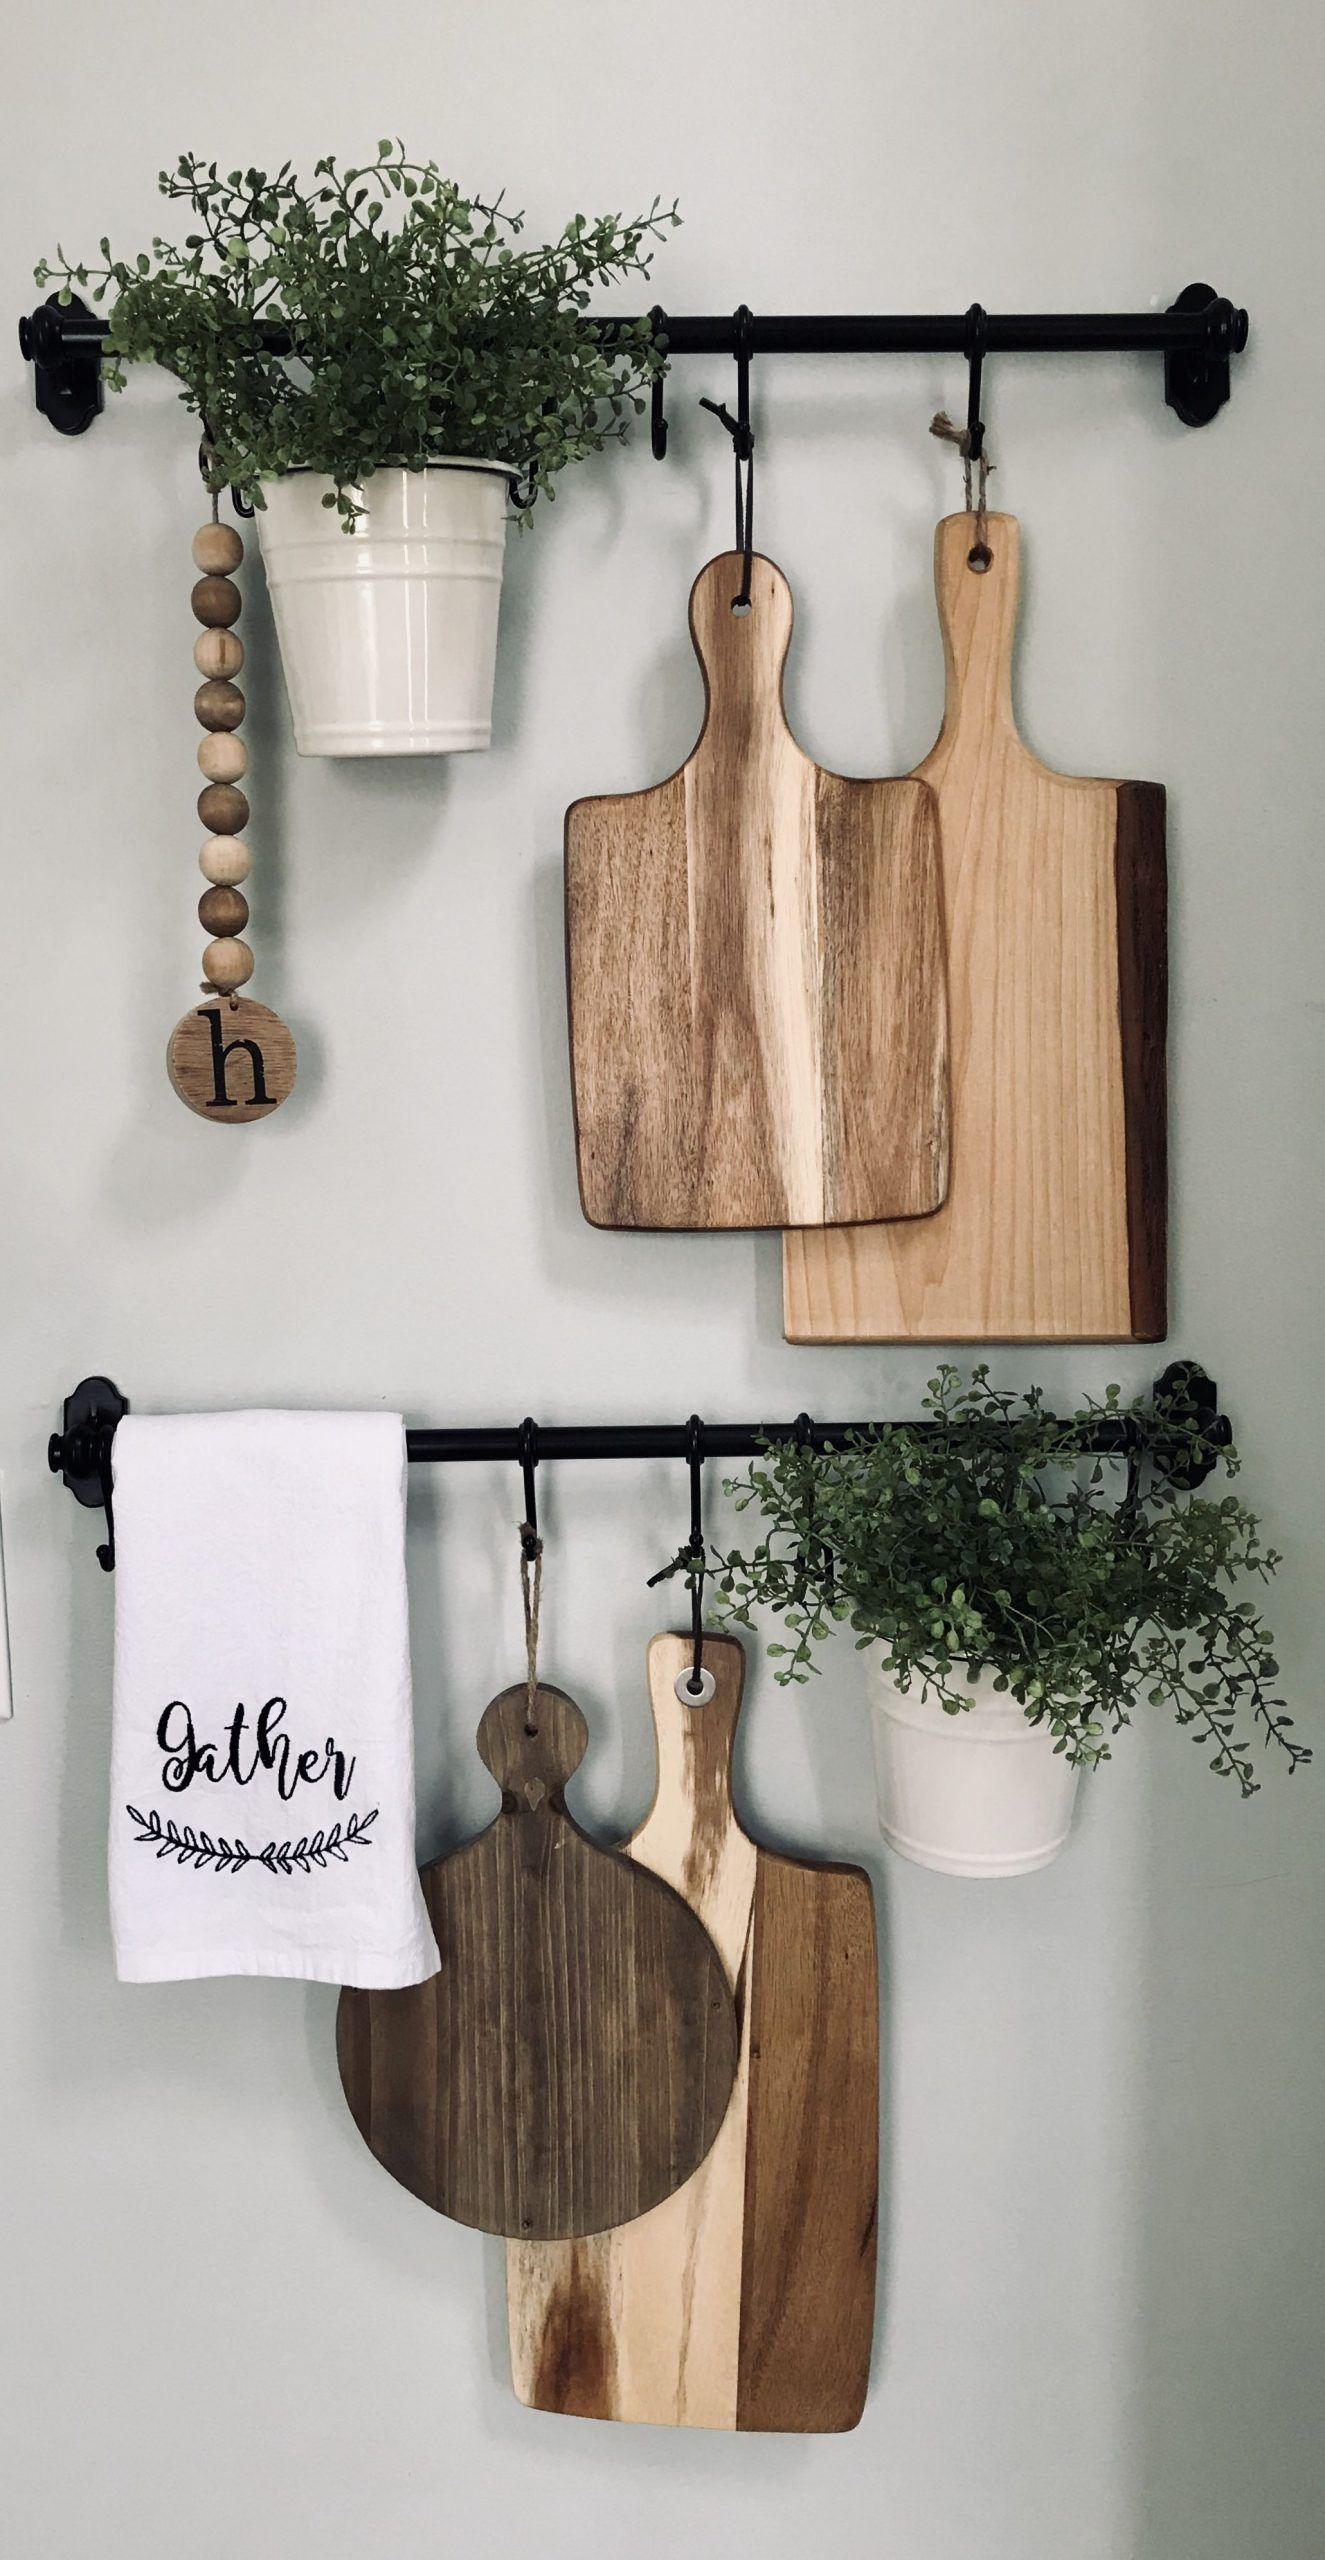 Farmhouse style decor for small kitchen/dining wall en 15